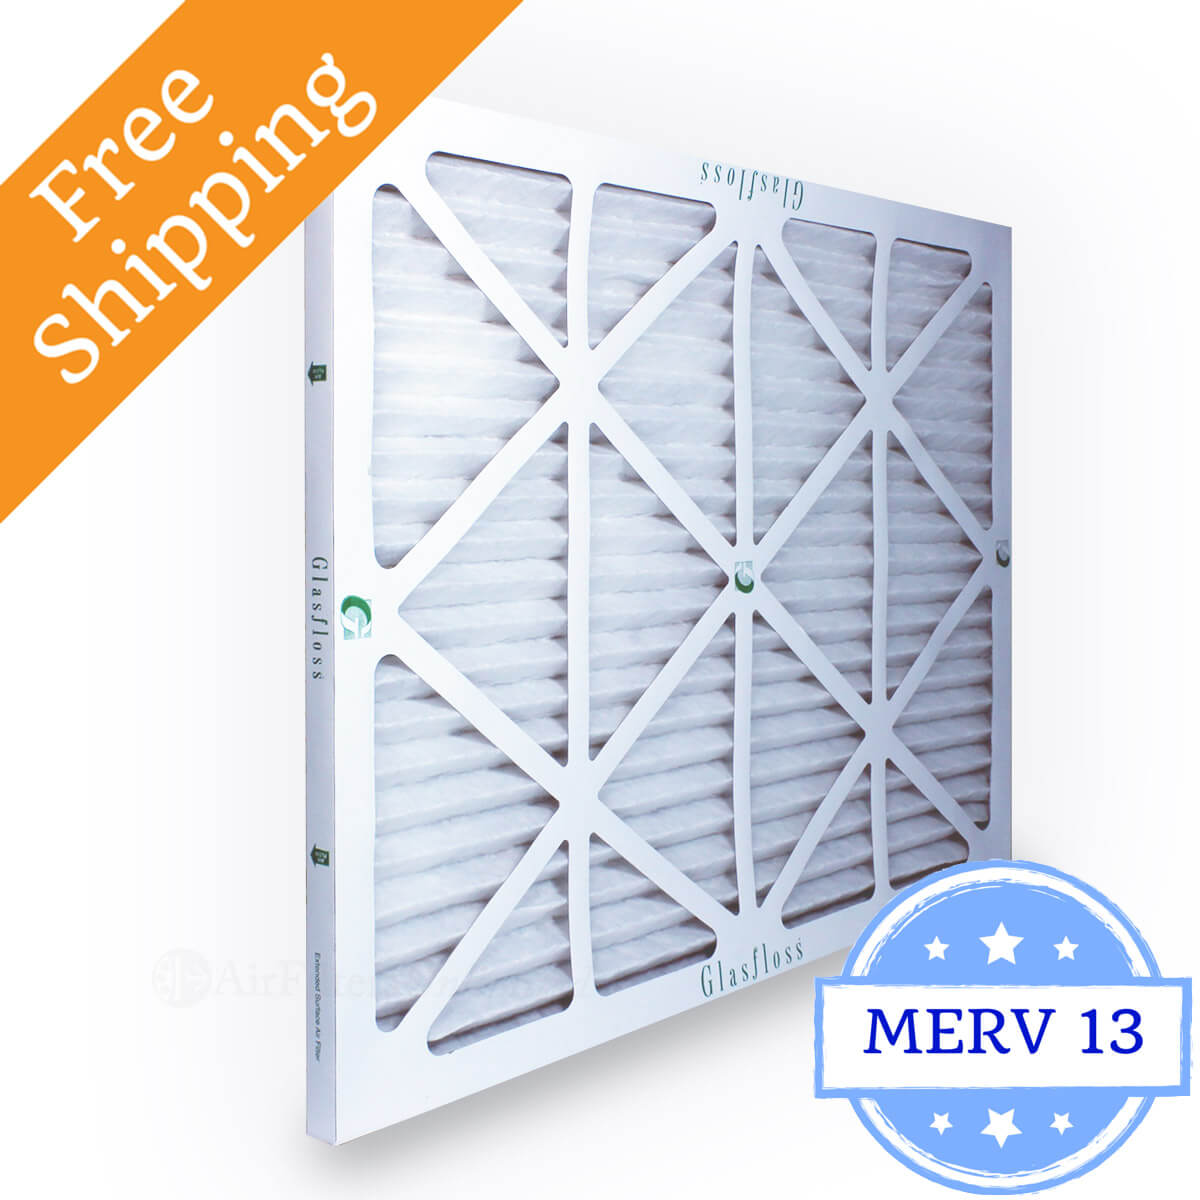 Glasfloss 16x24x1 Air Filter MR-13 Series